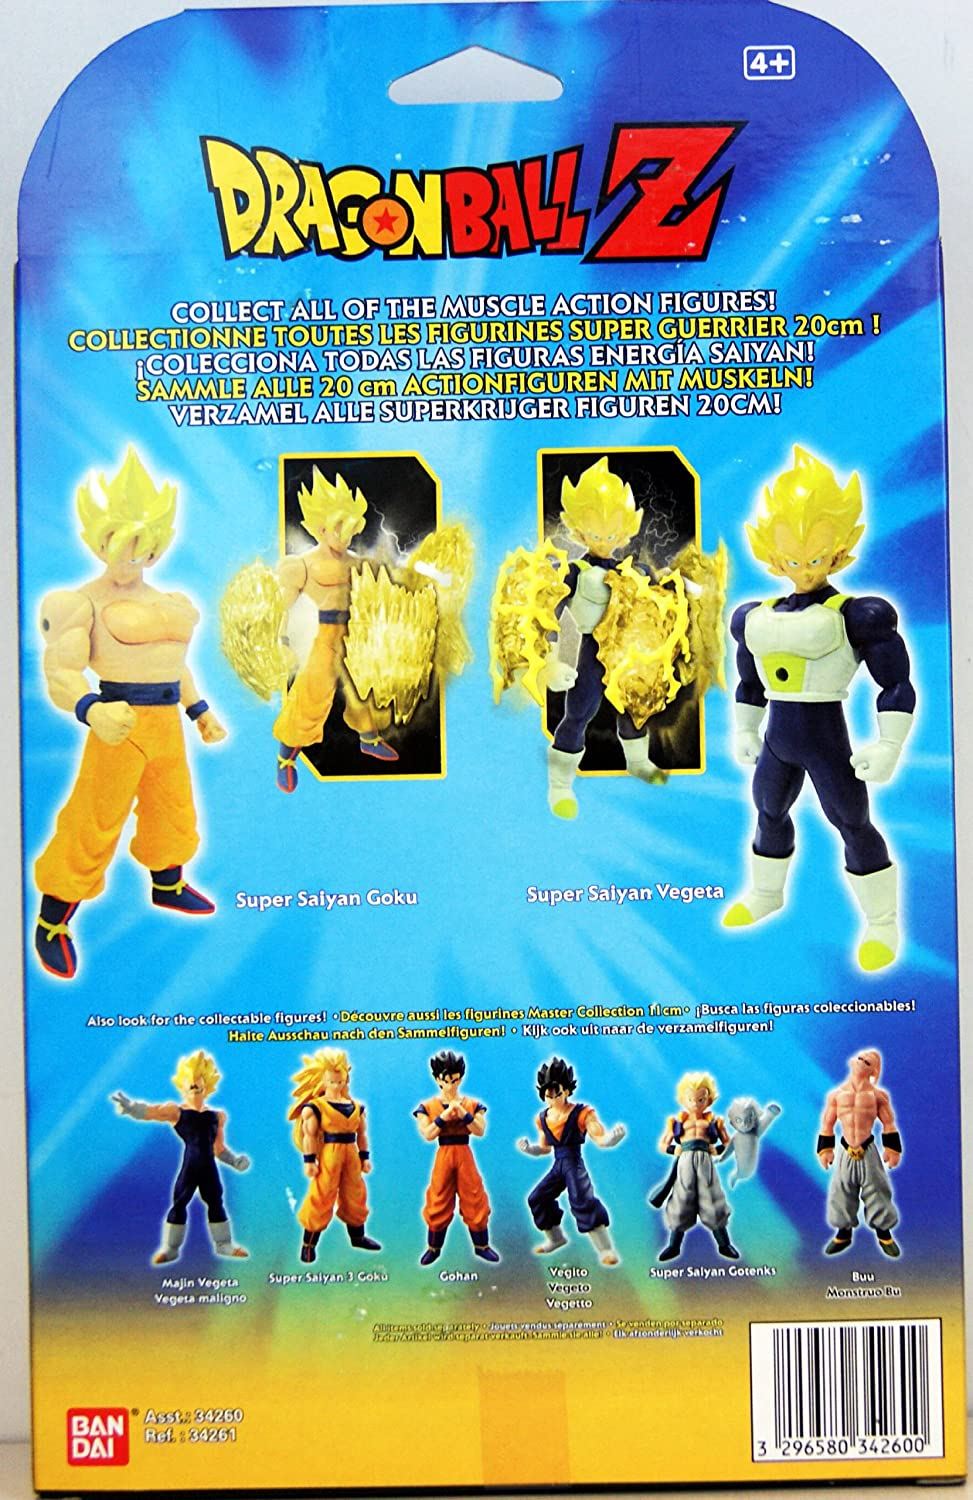 Dragonball Z - Muscle Action Figures 8